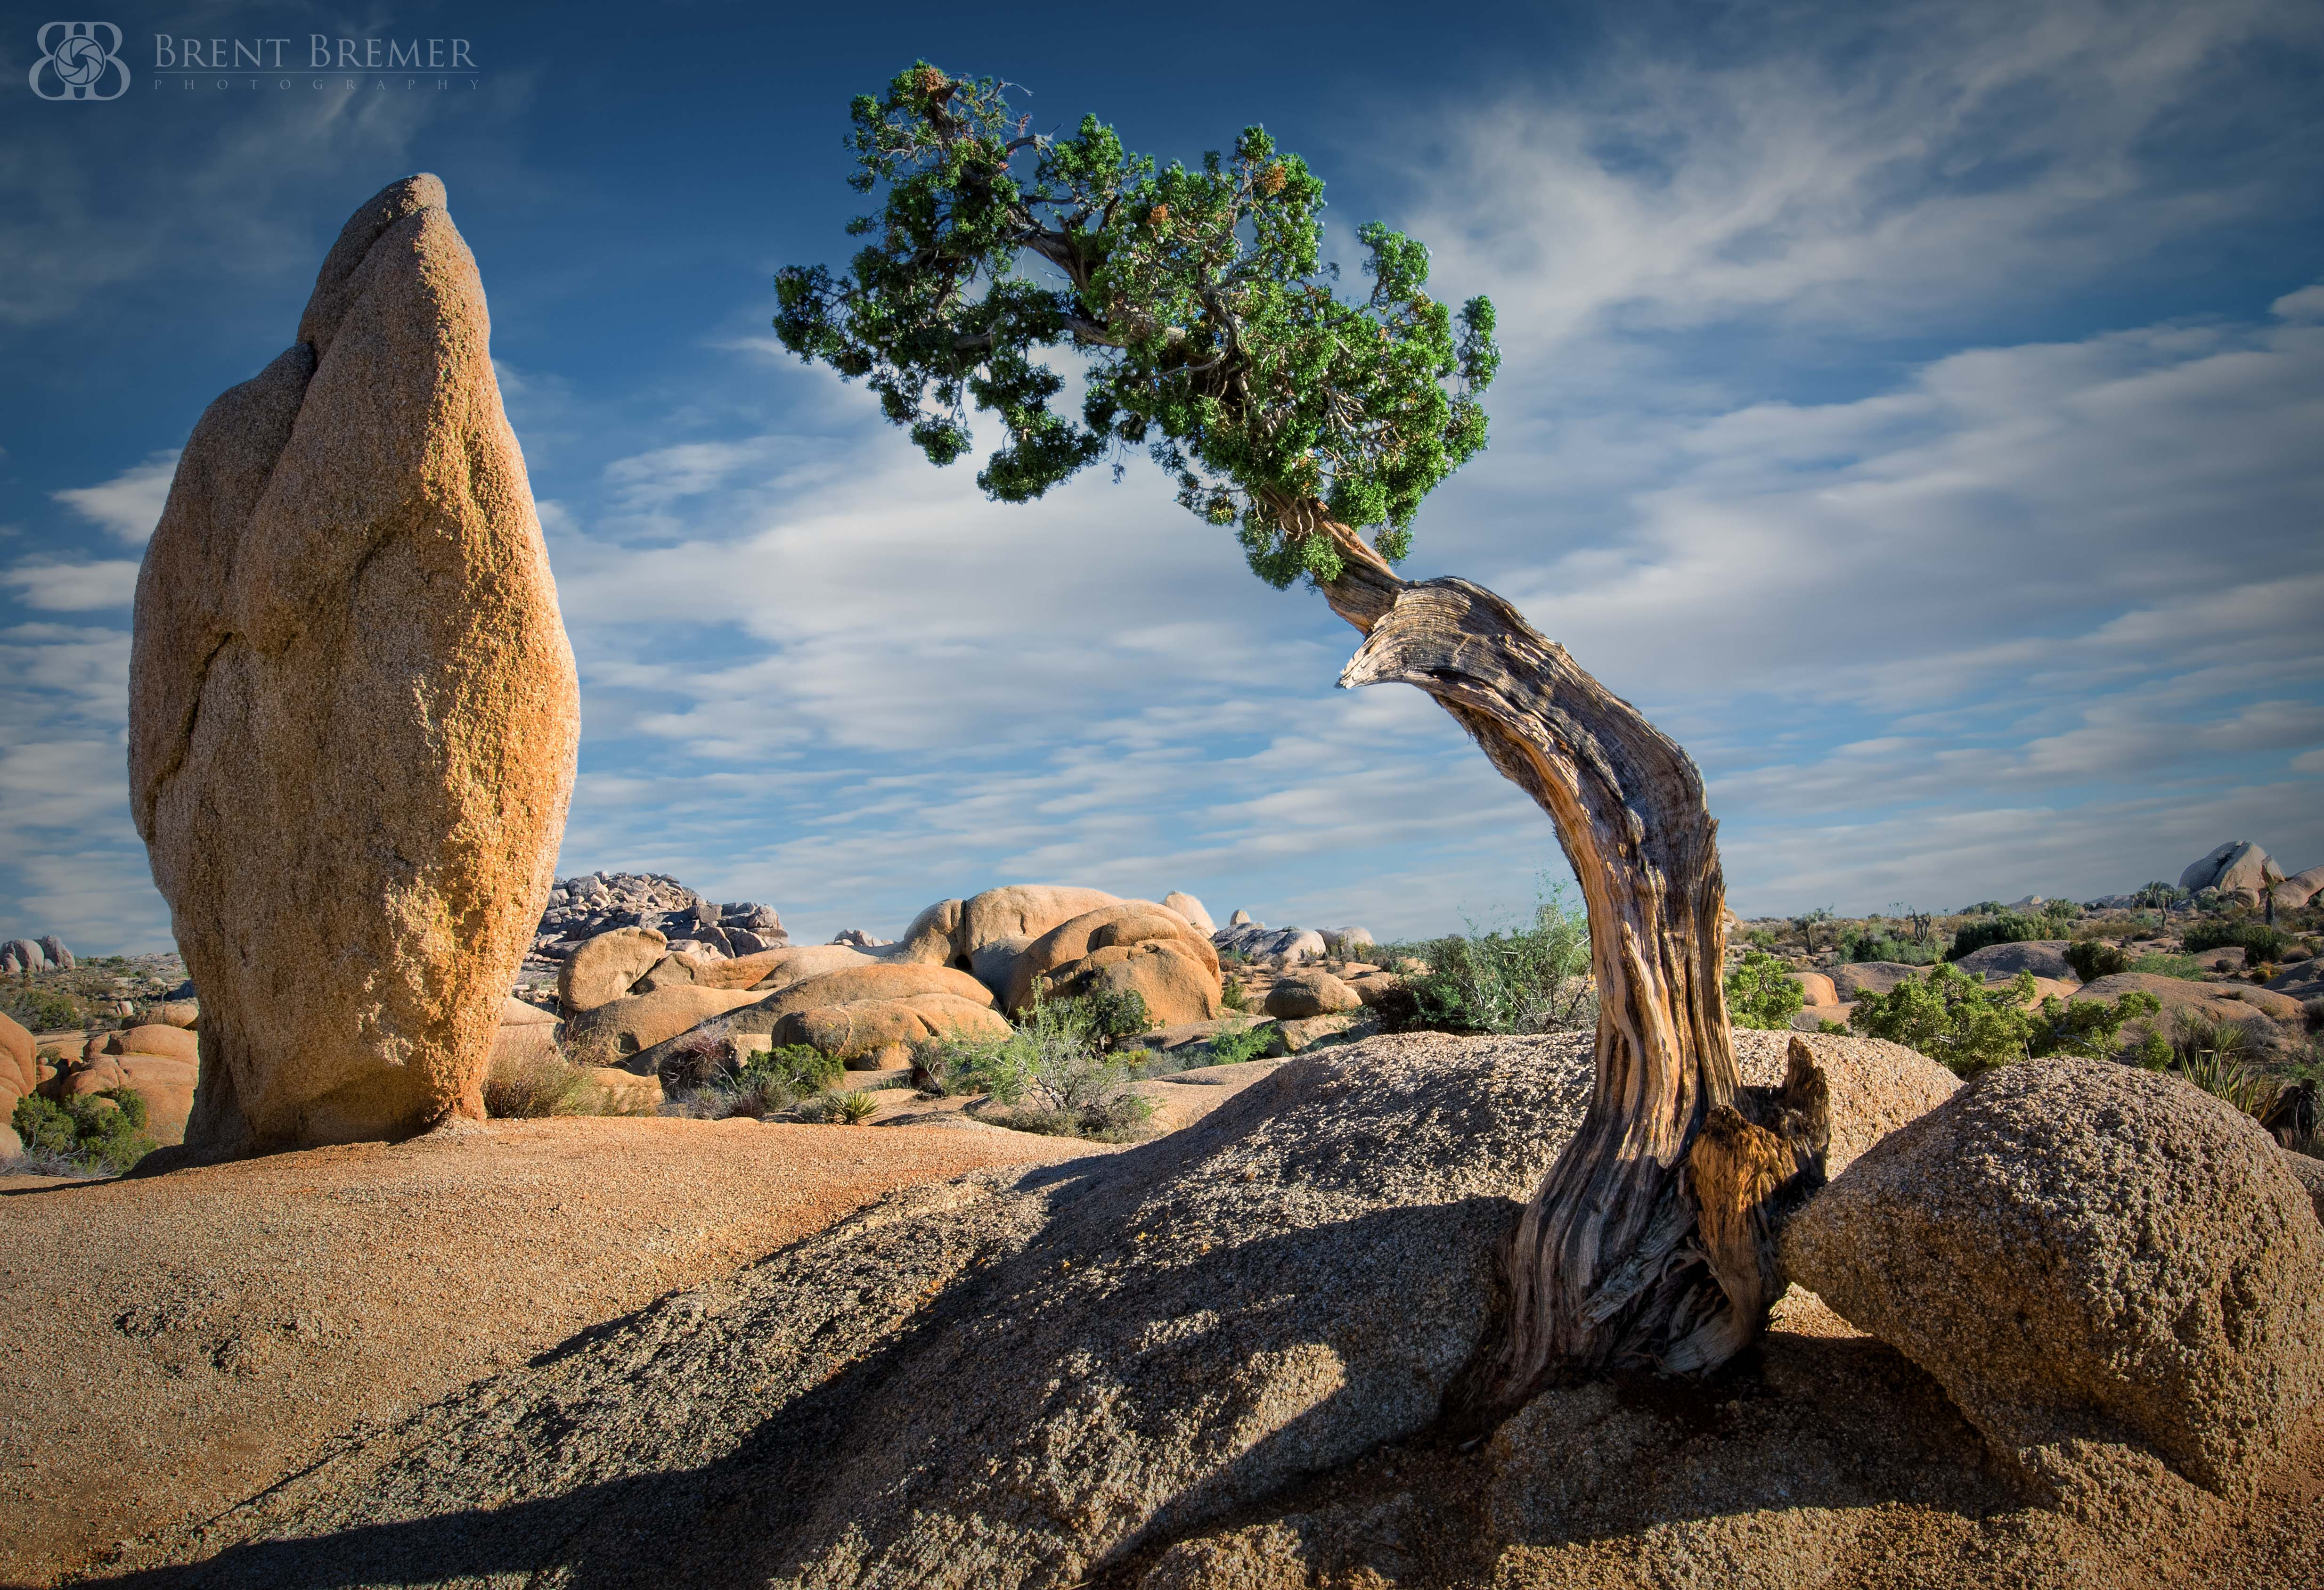 The Juniper and the Monolith